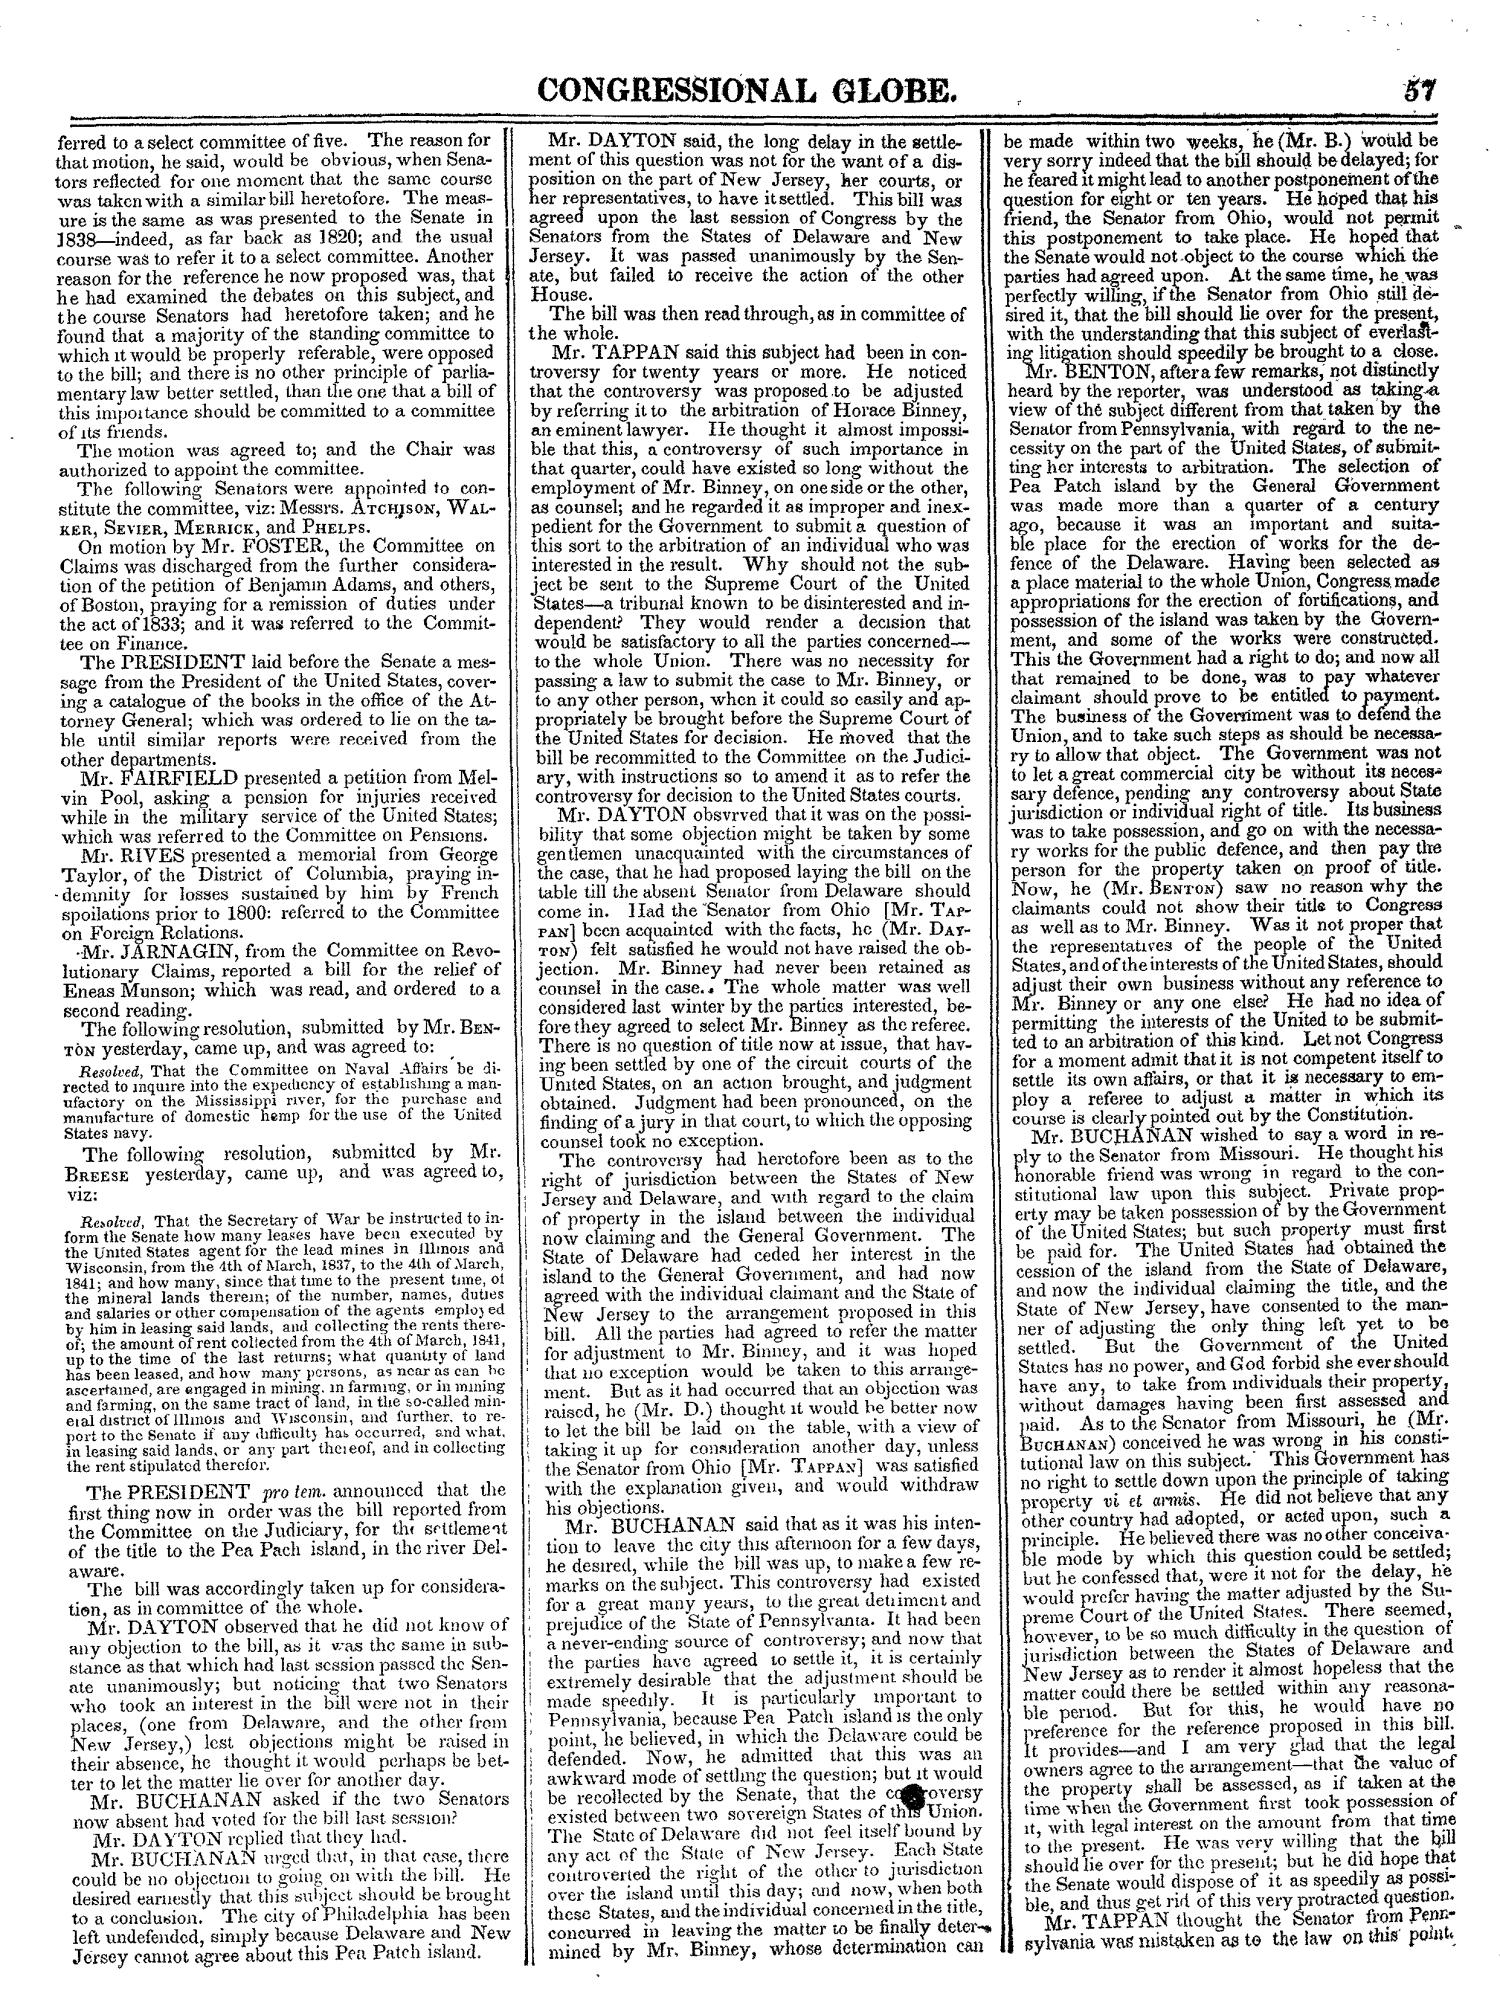 The Congressional Globe, Volume 13, Part 1: Twenty-Eighth Congress, First Session                                                                                                      57